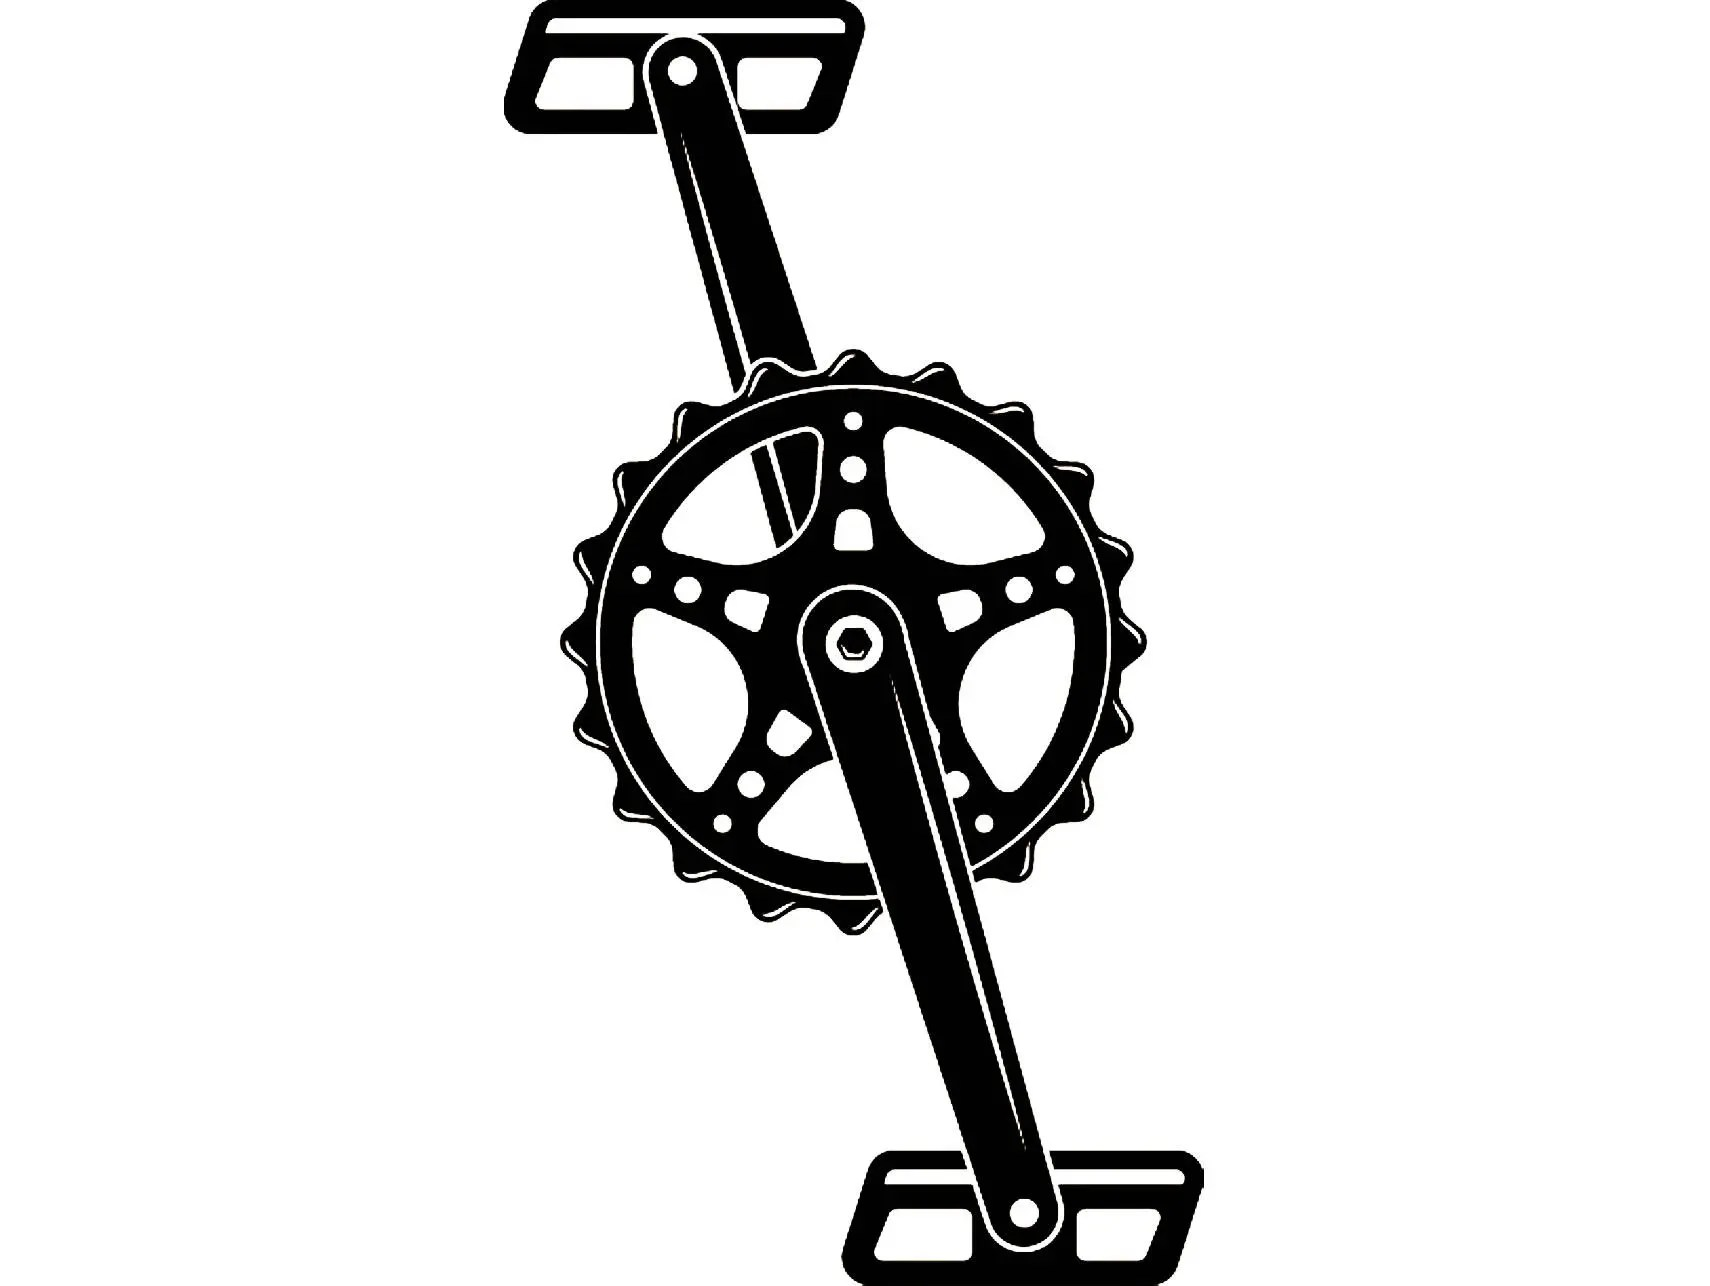 Racing Bicycle Clipart Bicycle Crank 1 Pedal Cycle Cycling Bike Beach Cruiser